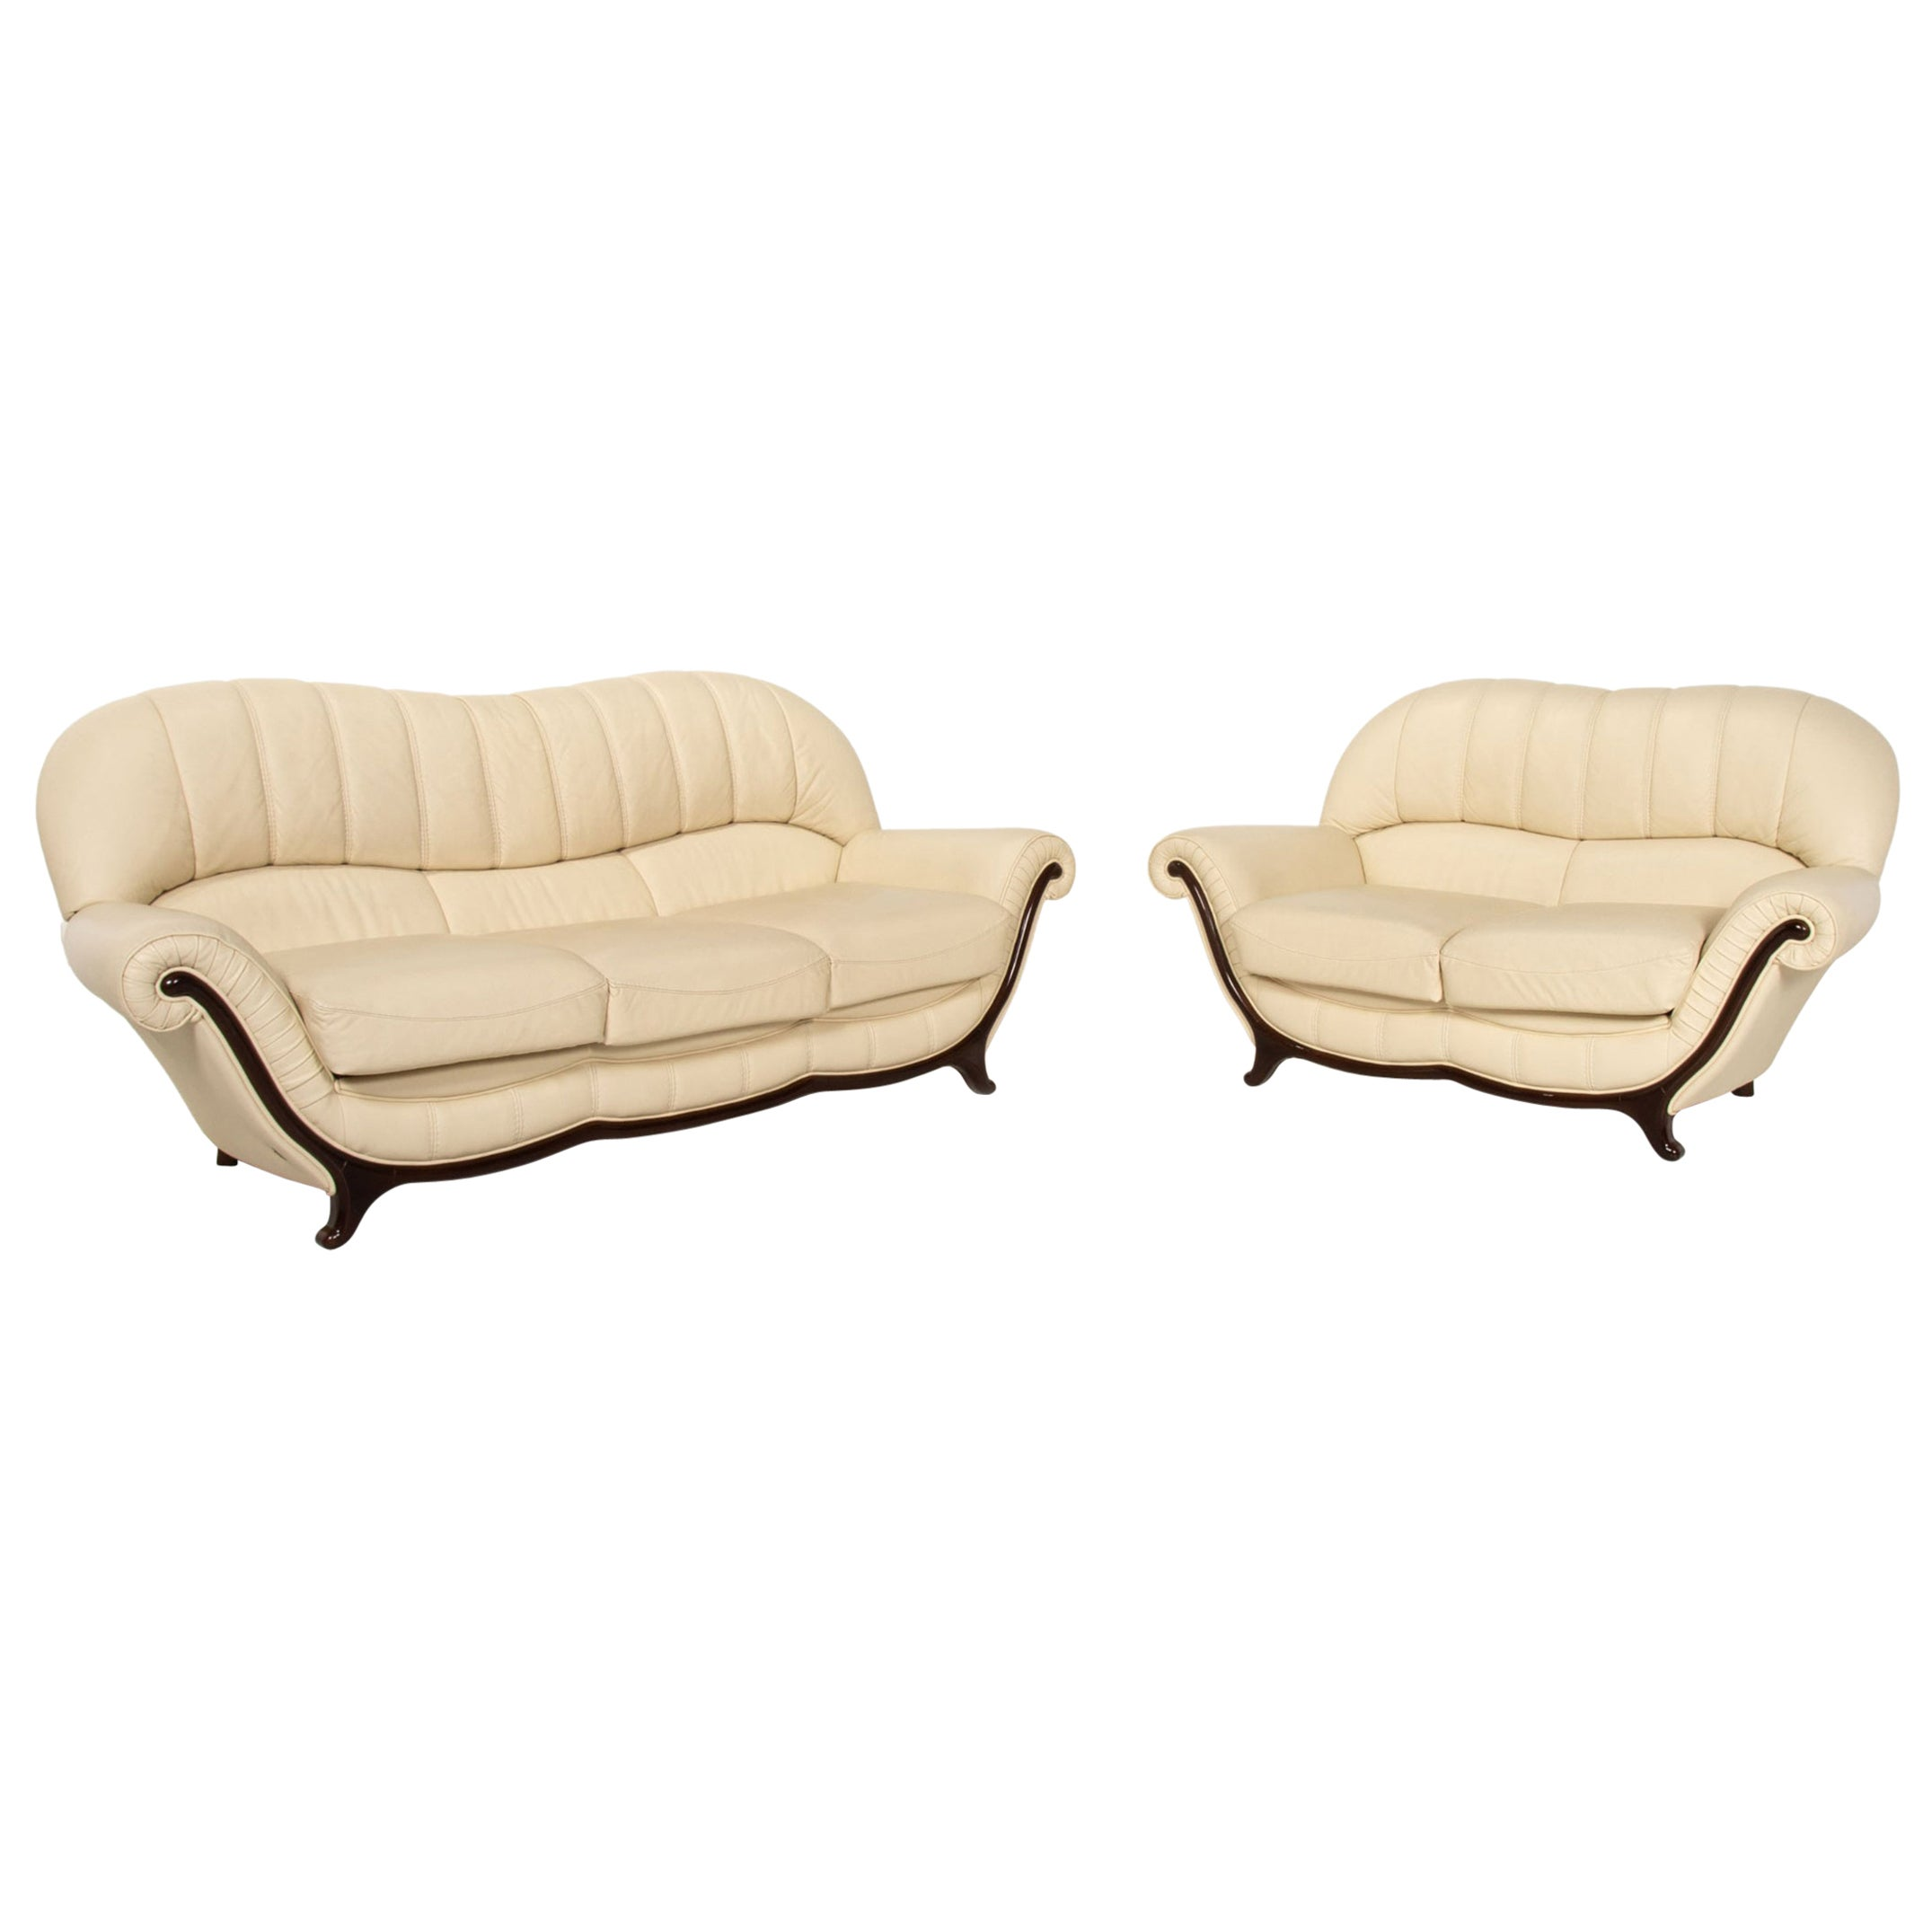 Nieri Leather Wood Sofa Set Cream 1 Three-Seater 1 Two-Seater